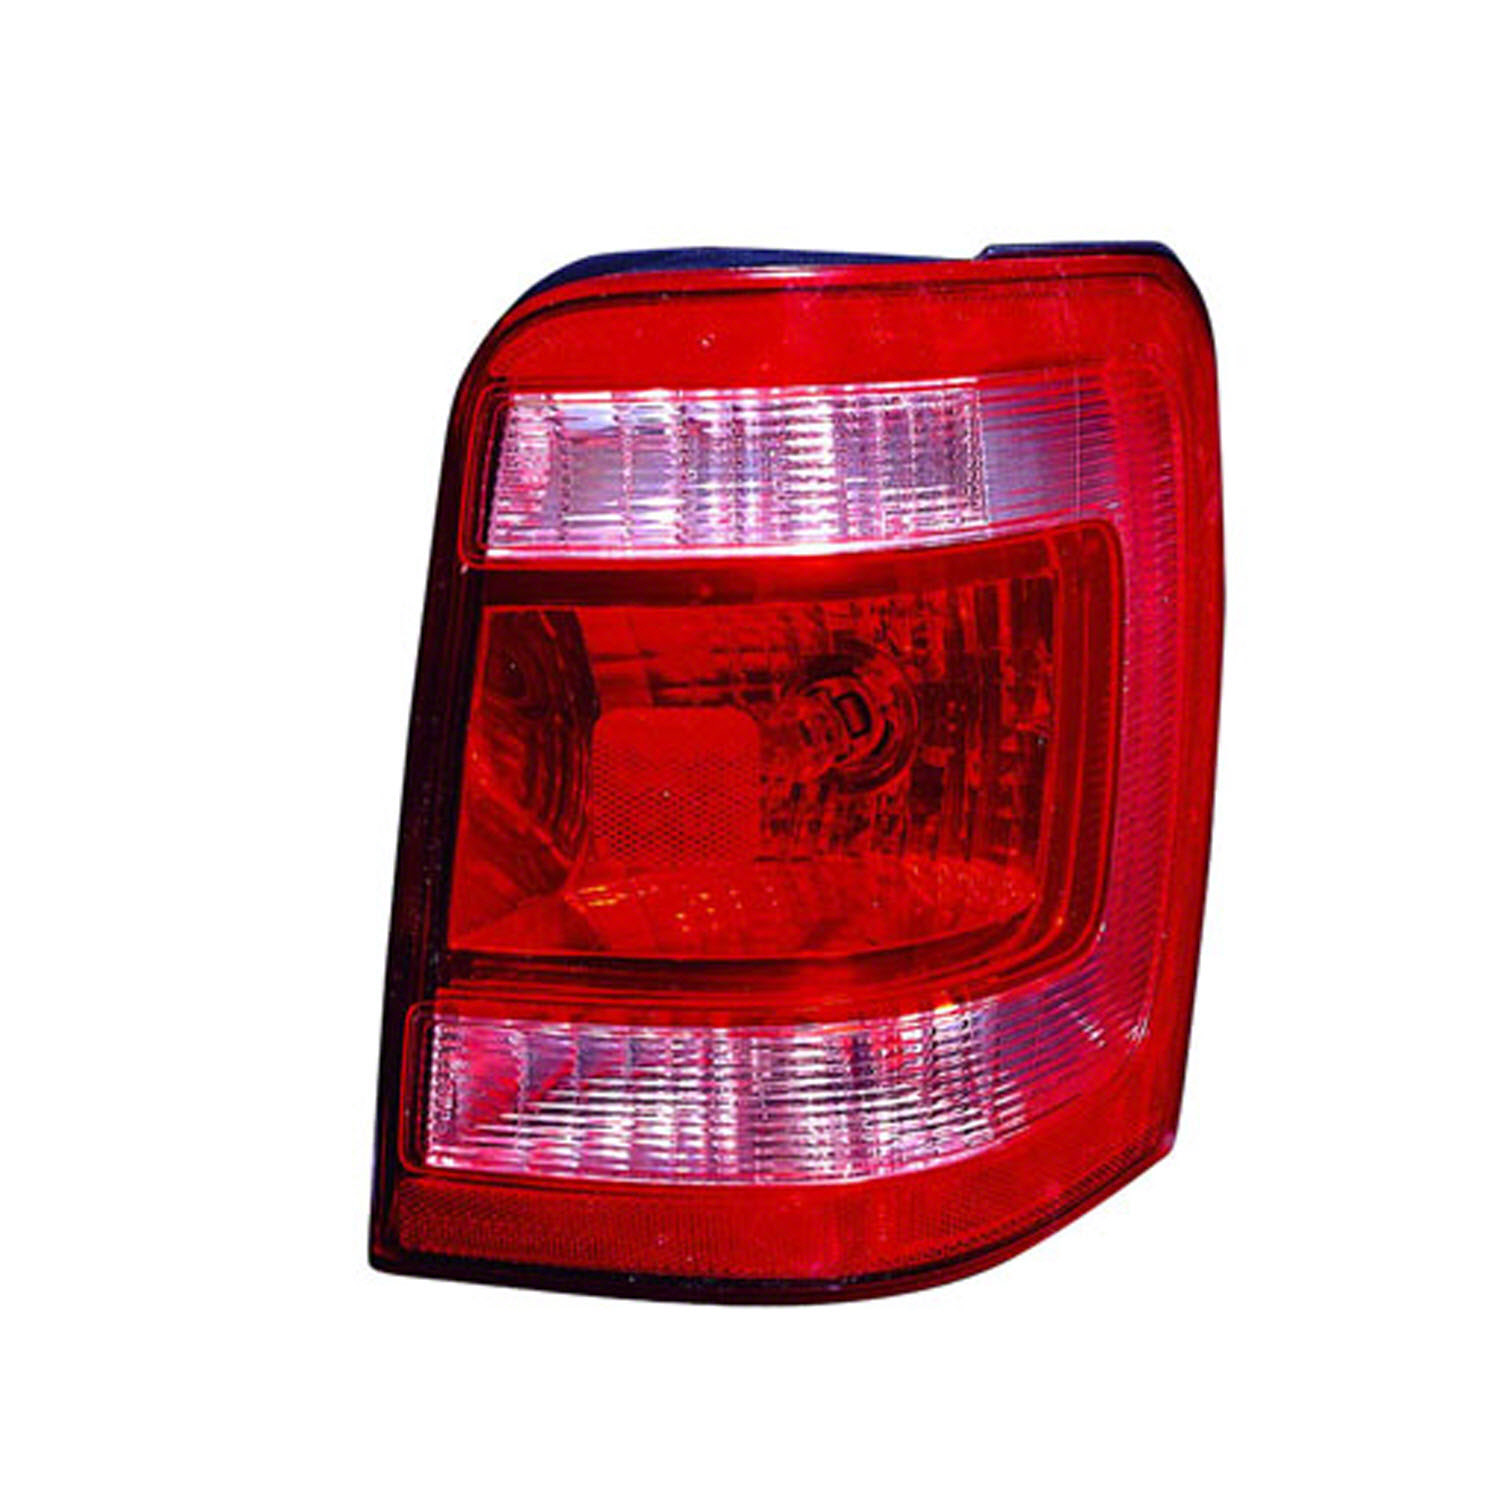 2008-2012 Ford Escape  Aftermarket Passenger Side Rear Tail Lamp Lens and Housing 8L8Z13404A